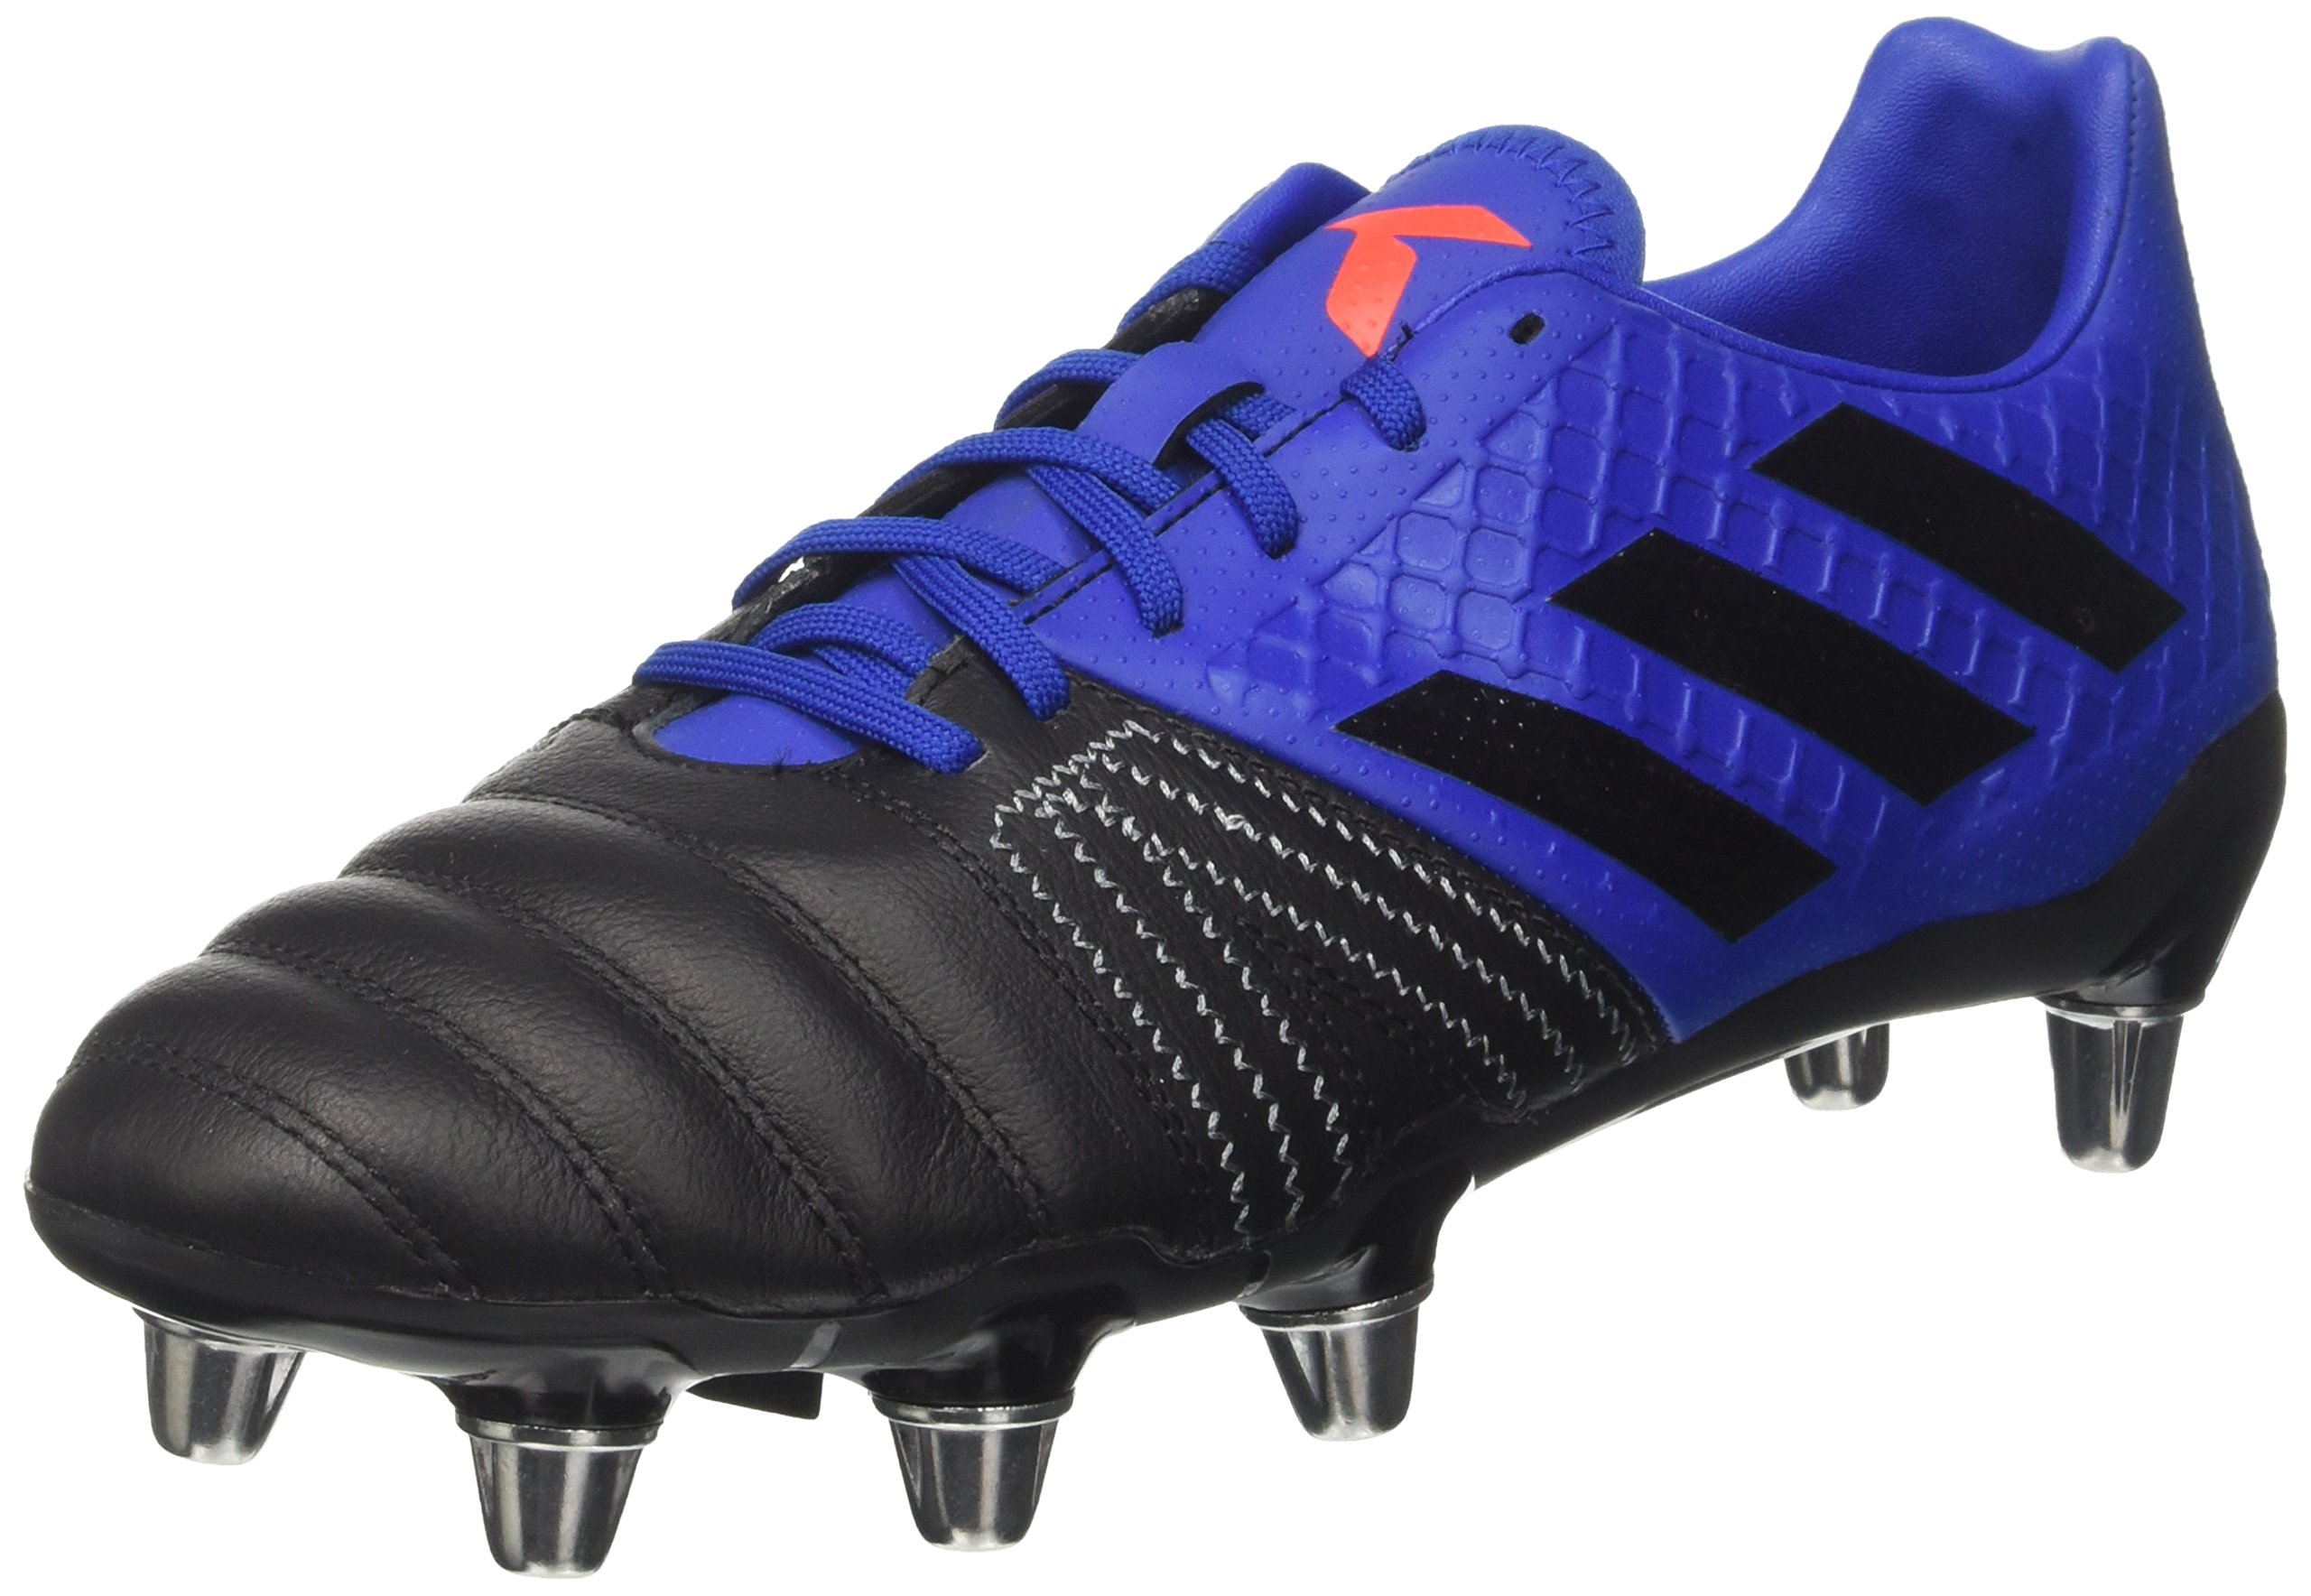 Adidas Kakari Elite SG Boots Adults by adidas